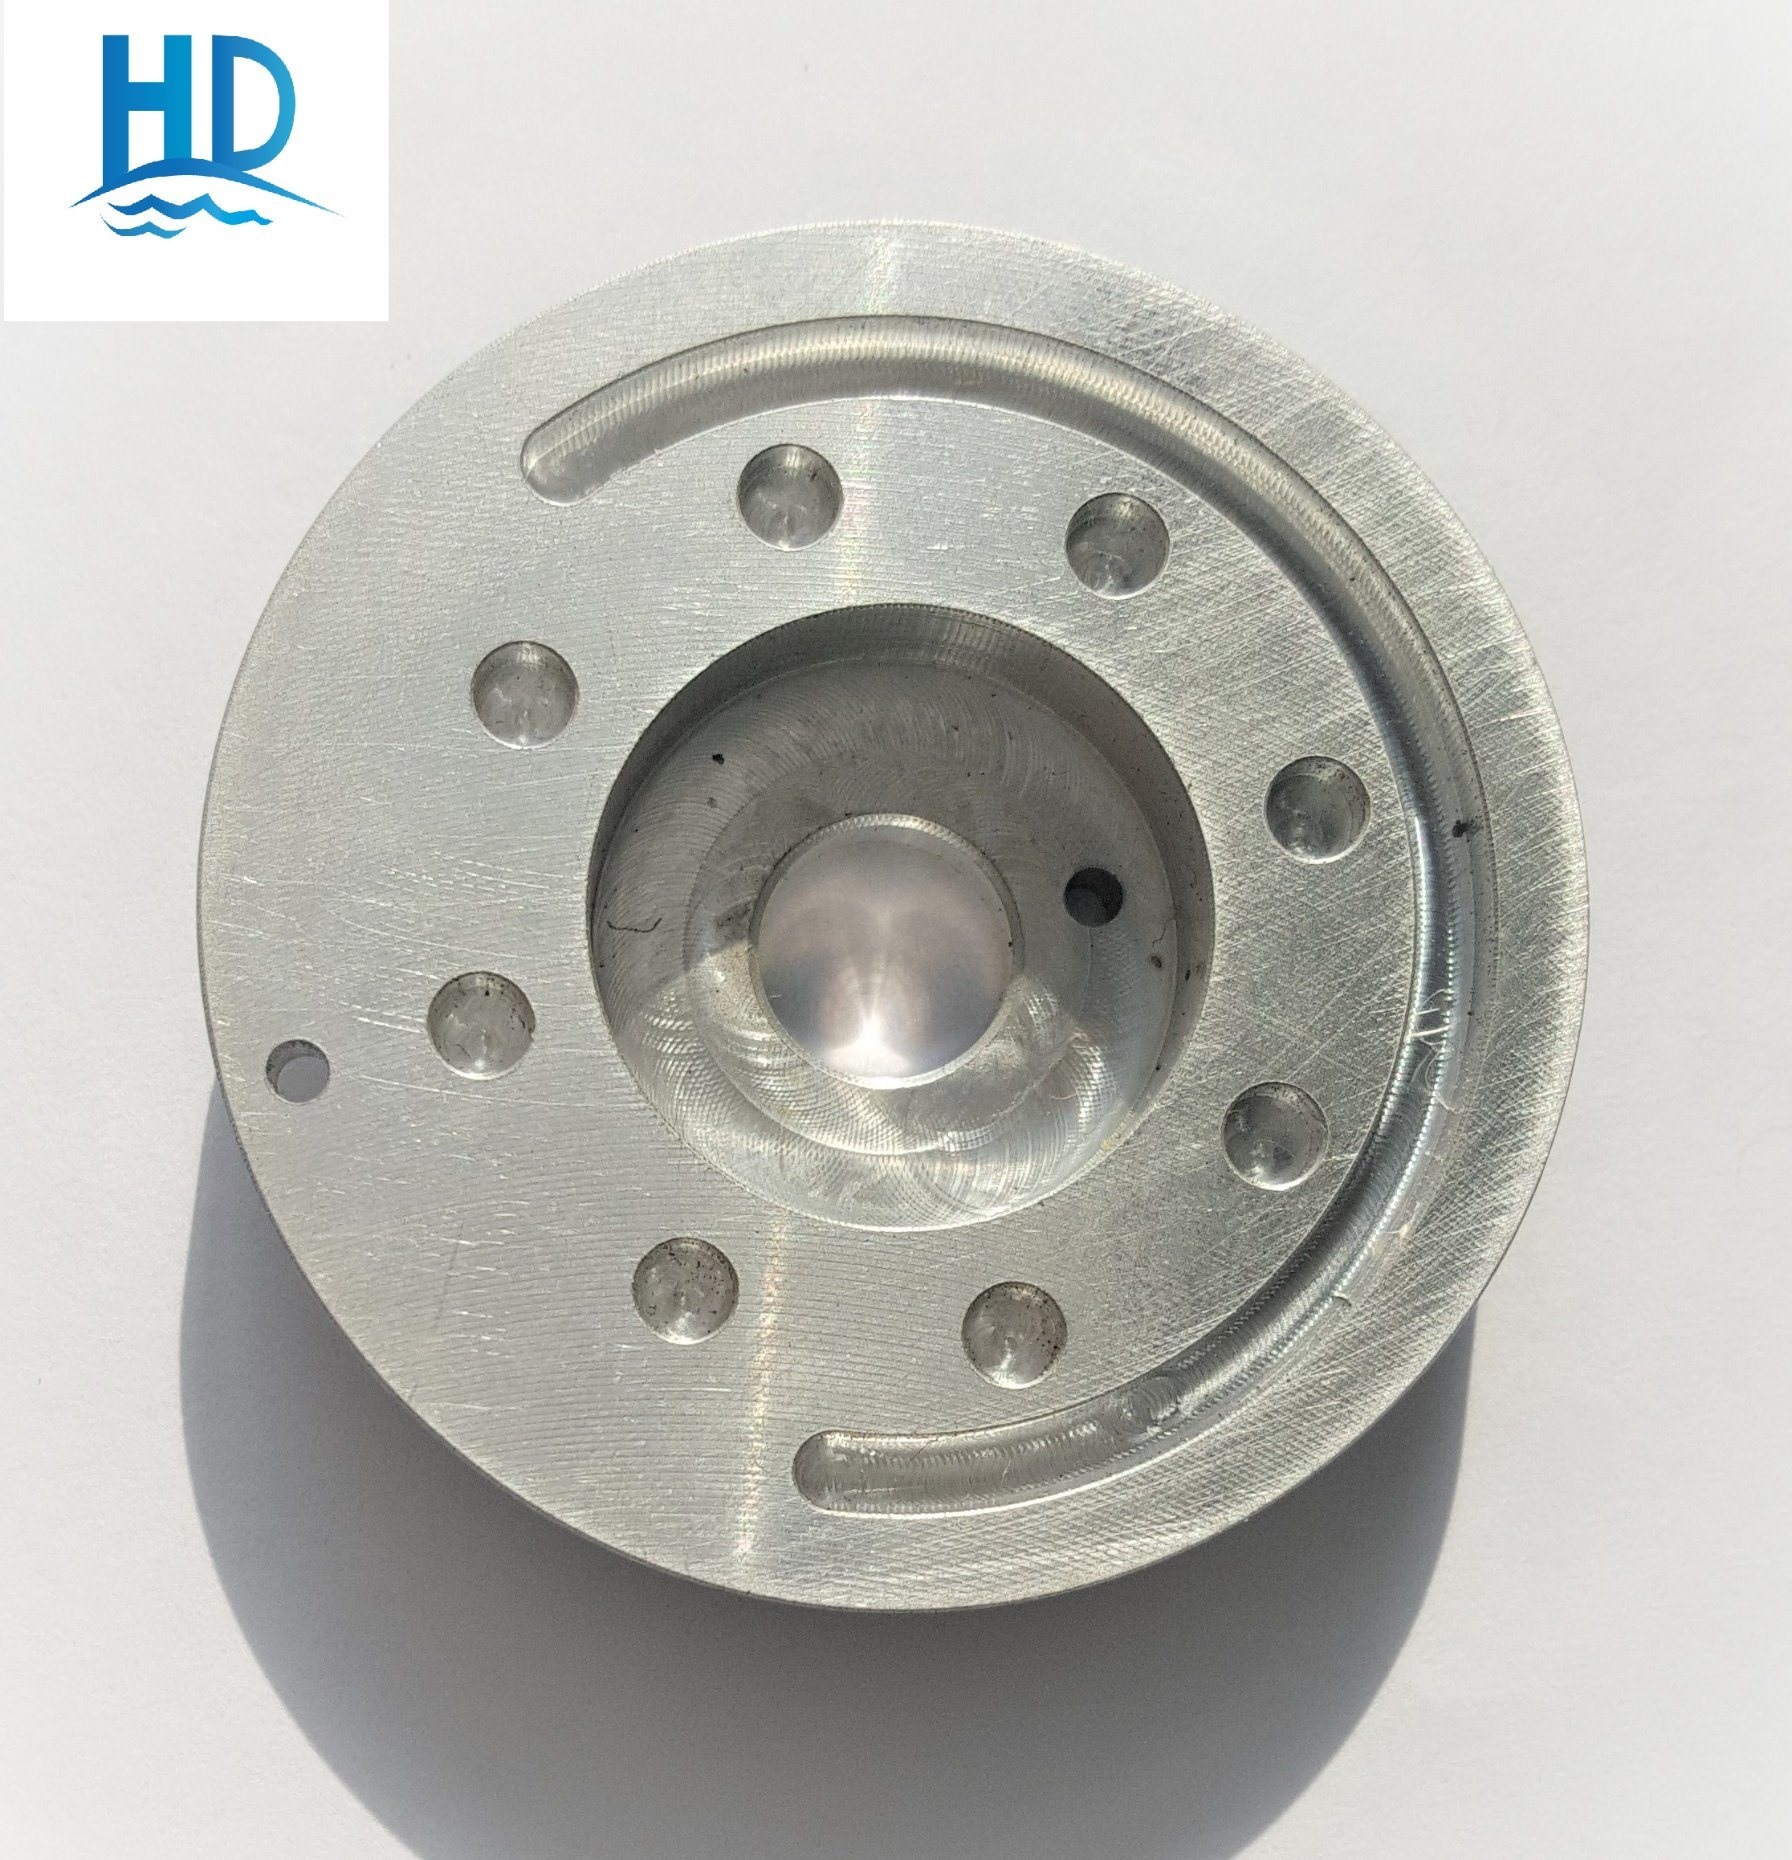 Aluminum, Brass, Stainless Steel CNC Machining Parts for Car, Motorcycle, Instrument (Milling, Turning, Machined, Machinery, Welding, Machine Shop,)